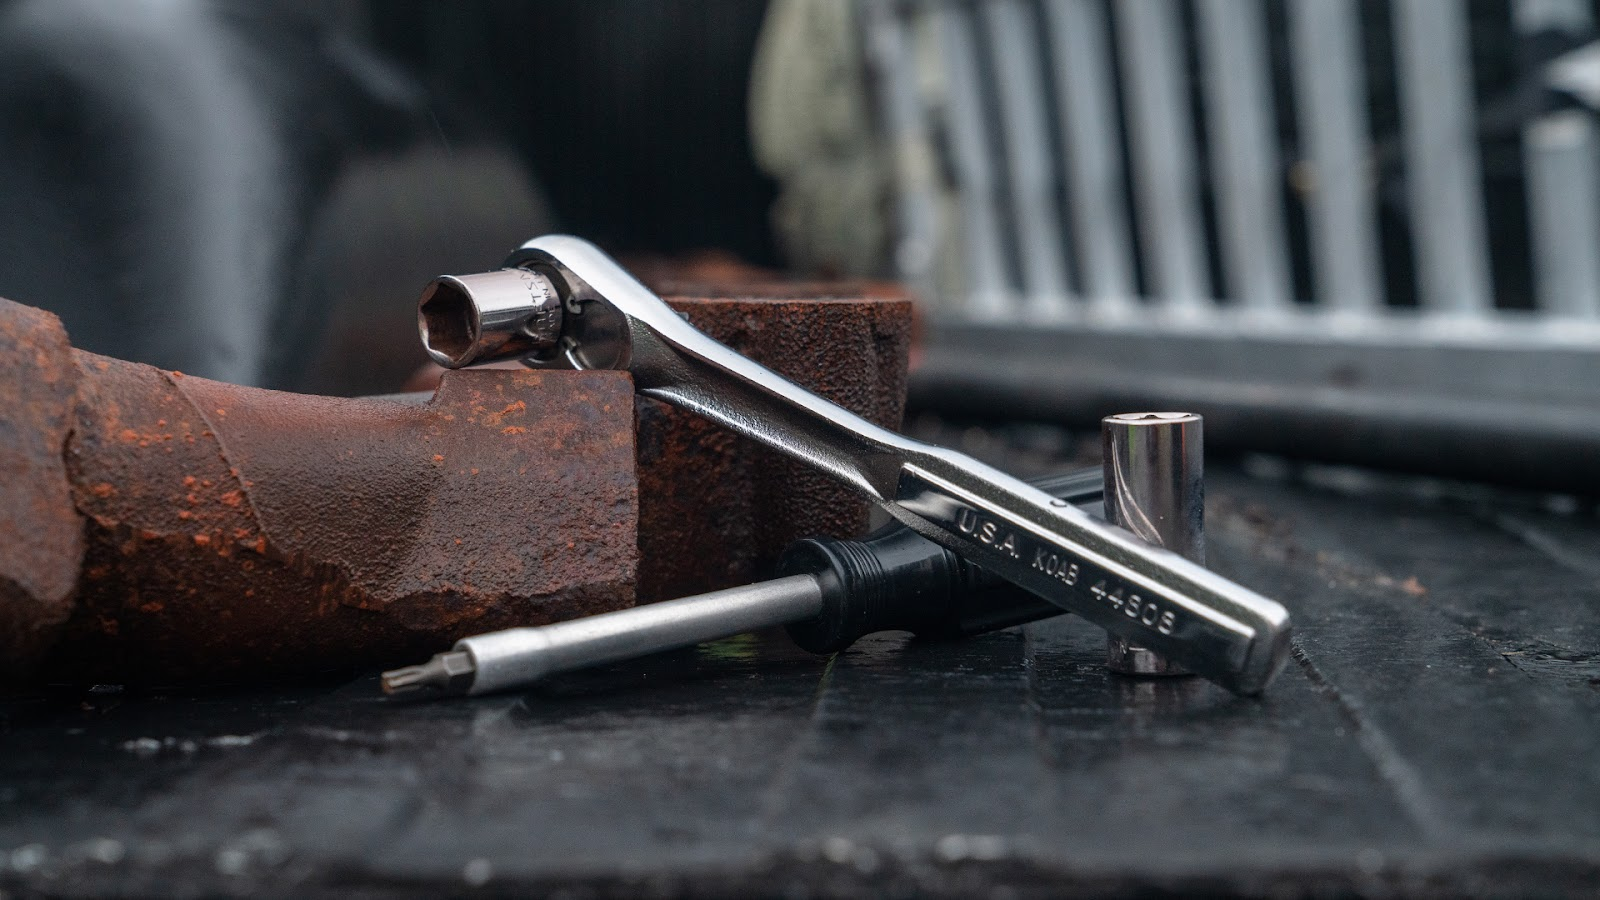 Review: Why the Craftsman Mechanic's Tool Set belongs in your garage